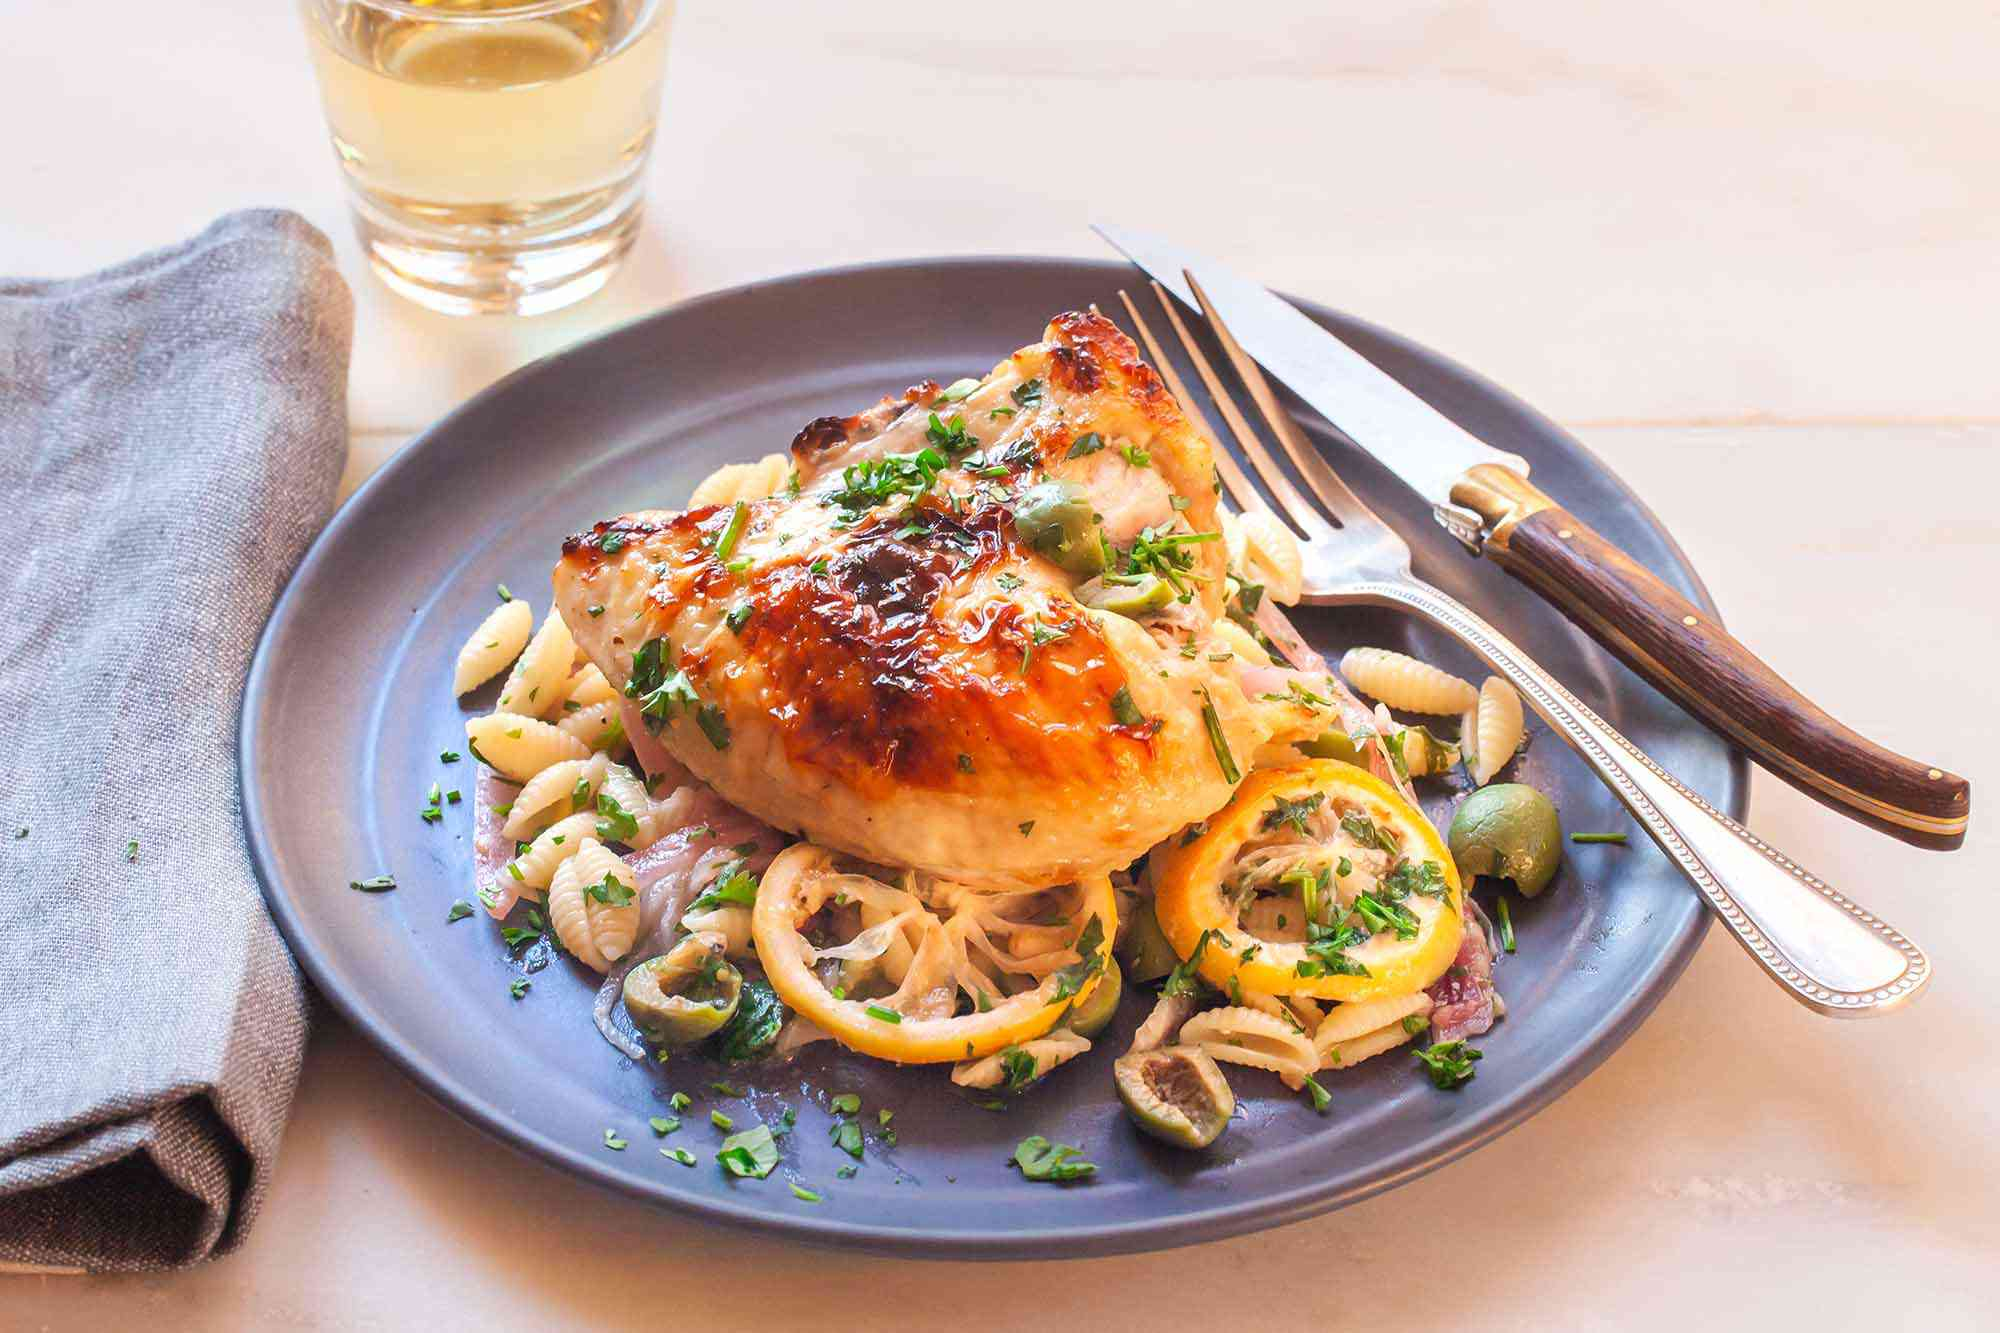 Yogurt marinated lemon chicken with pasta, olives and herbs on a rimmed plate. A fork and knife rest on the right edge of the slate plate. A grey linen is folded to the left of the plate an a tumbler of white wine is above the plate to the left.